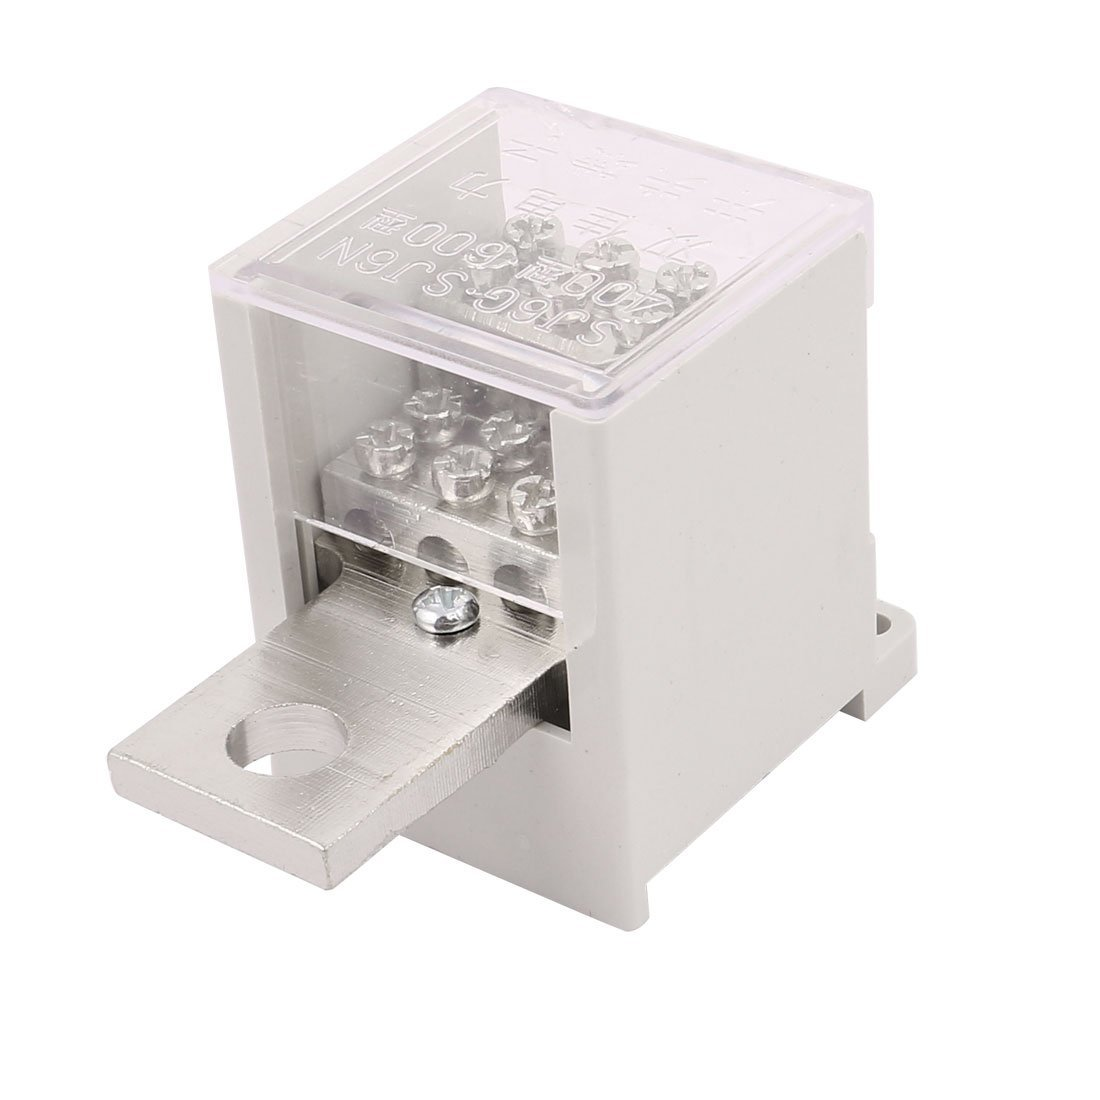 uxcell 400-Type Switch Terminal Wire Barrier Block 1 Inlet 8 Outlet for Miniature Circuit Breakers